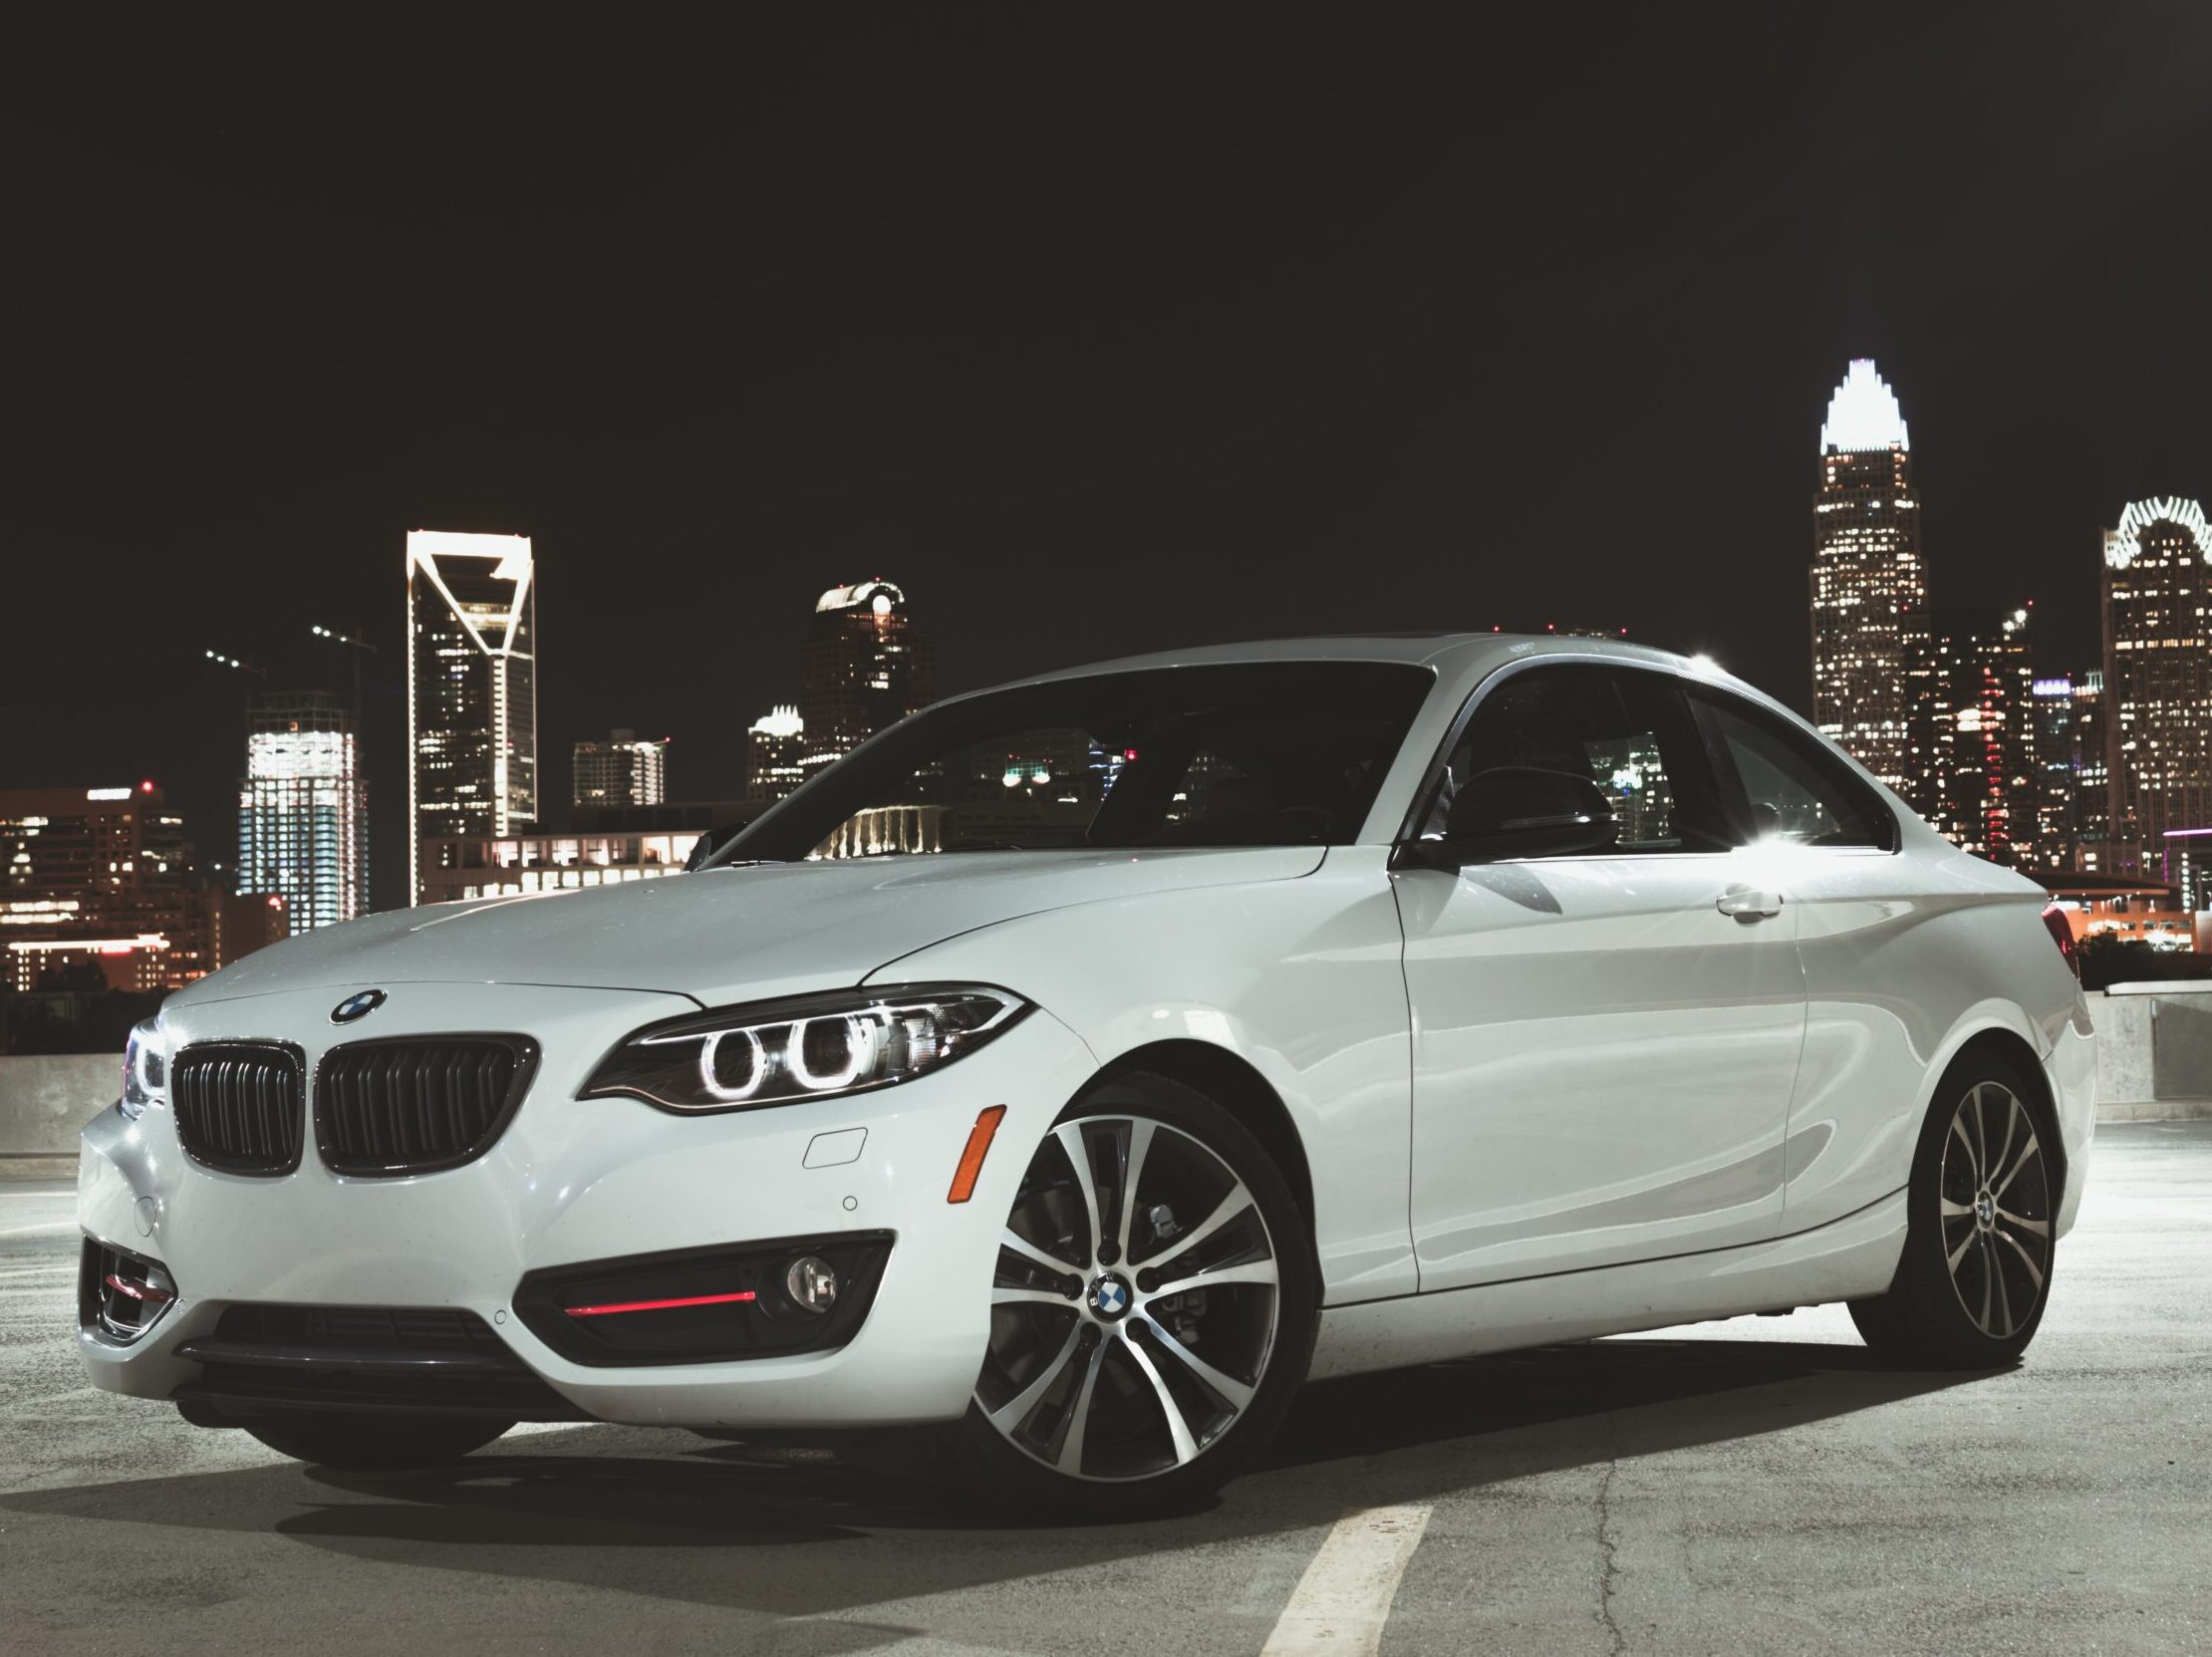 silver BMW coupe